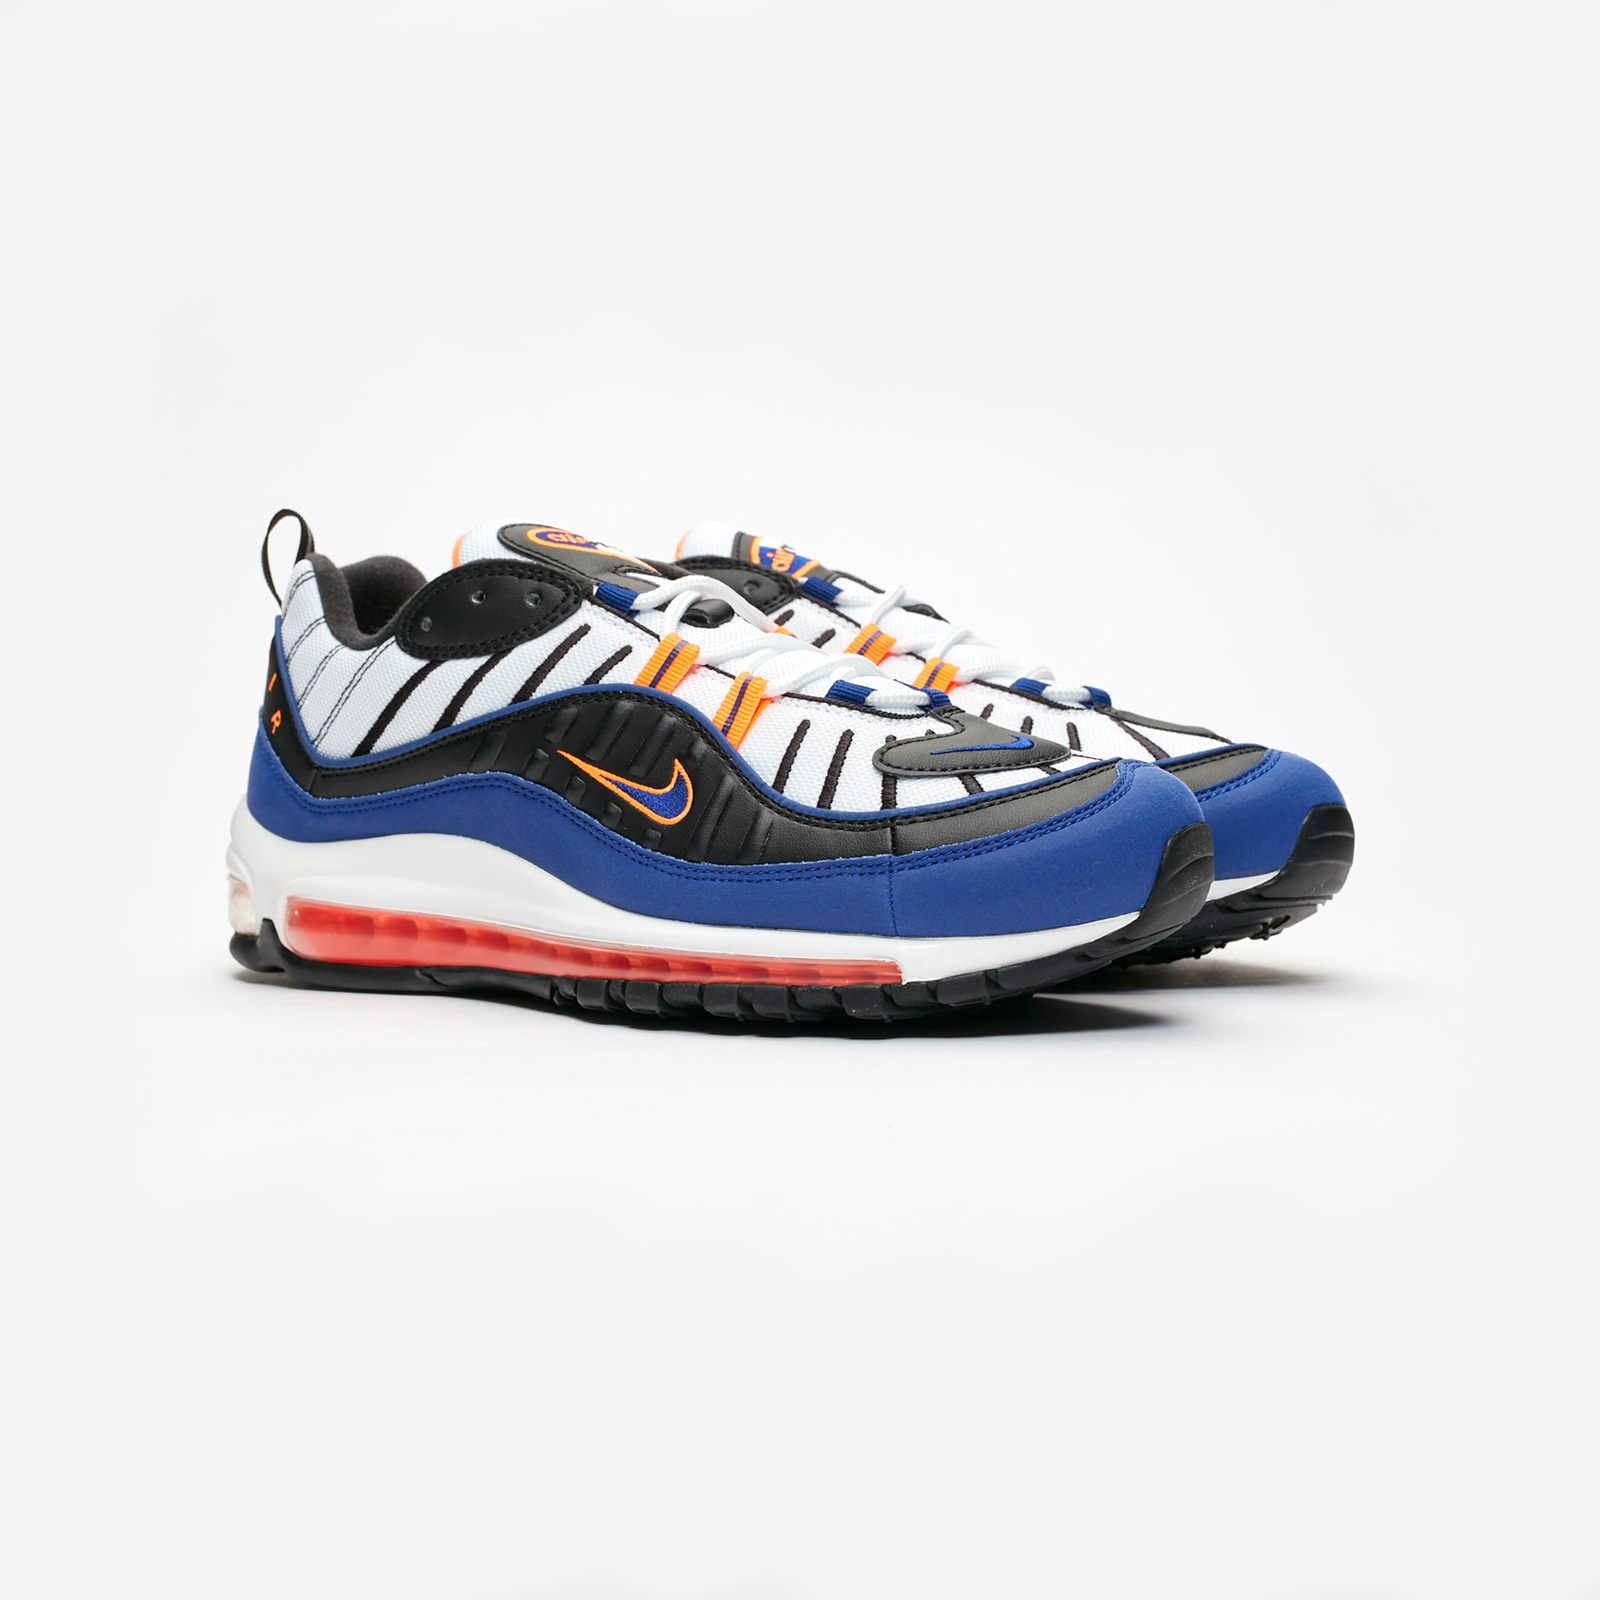 b990381e7d Nike Air Max 98 - Cd1536-100 - Sneakersnstuff | sneakers ...